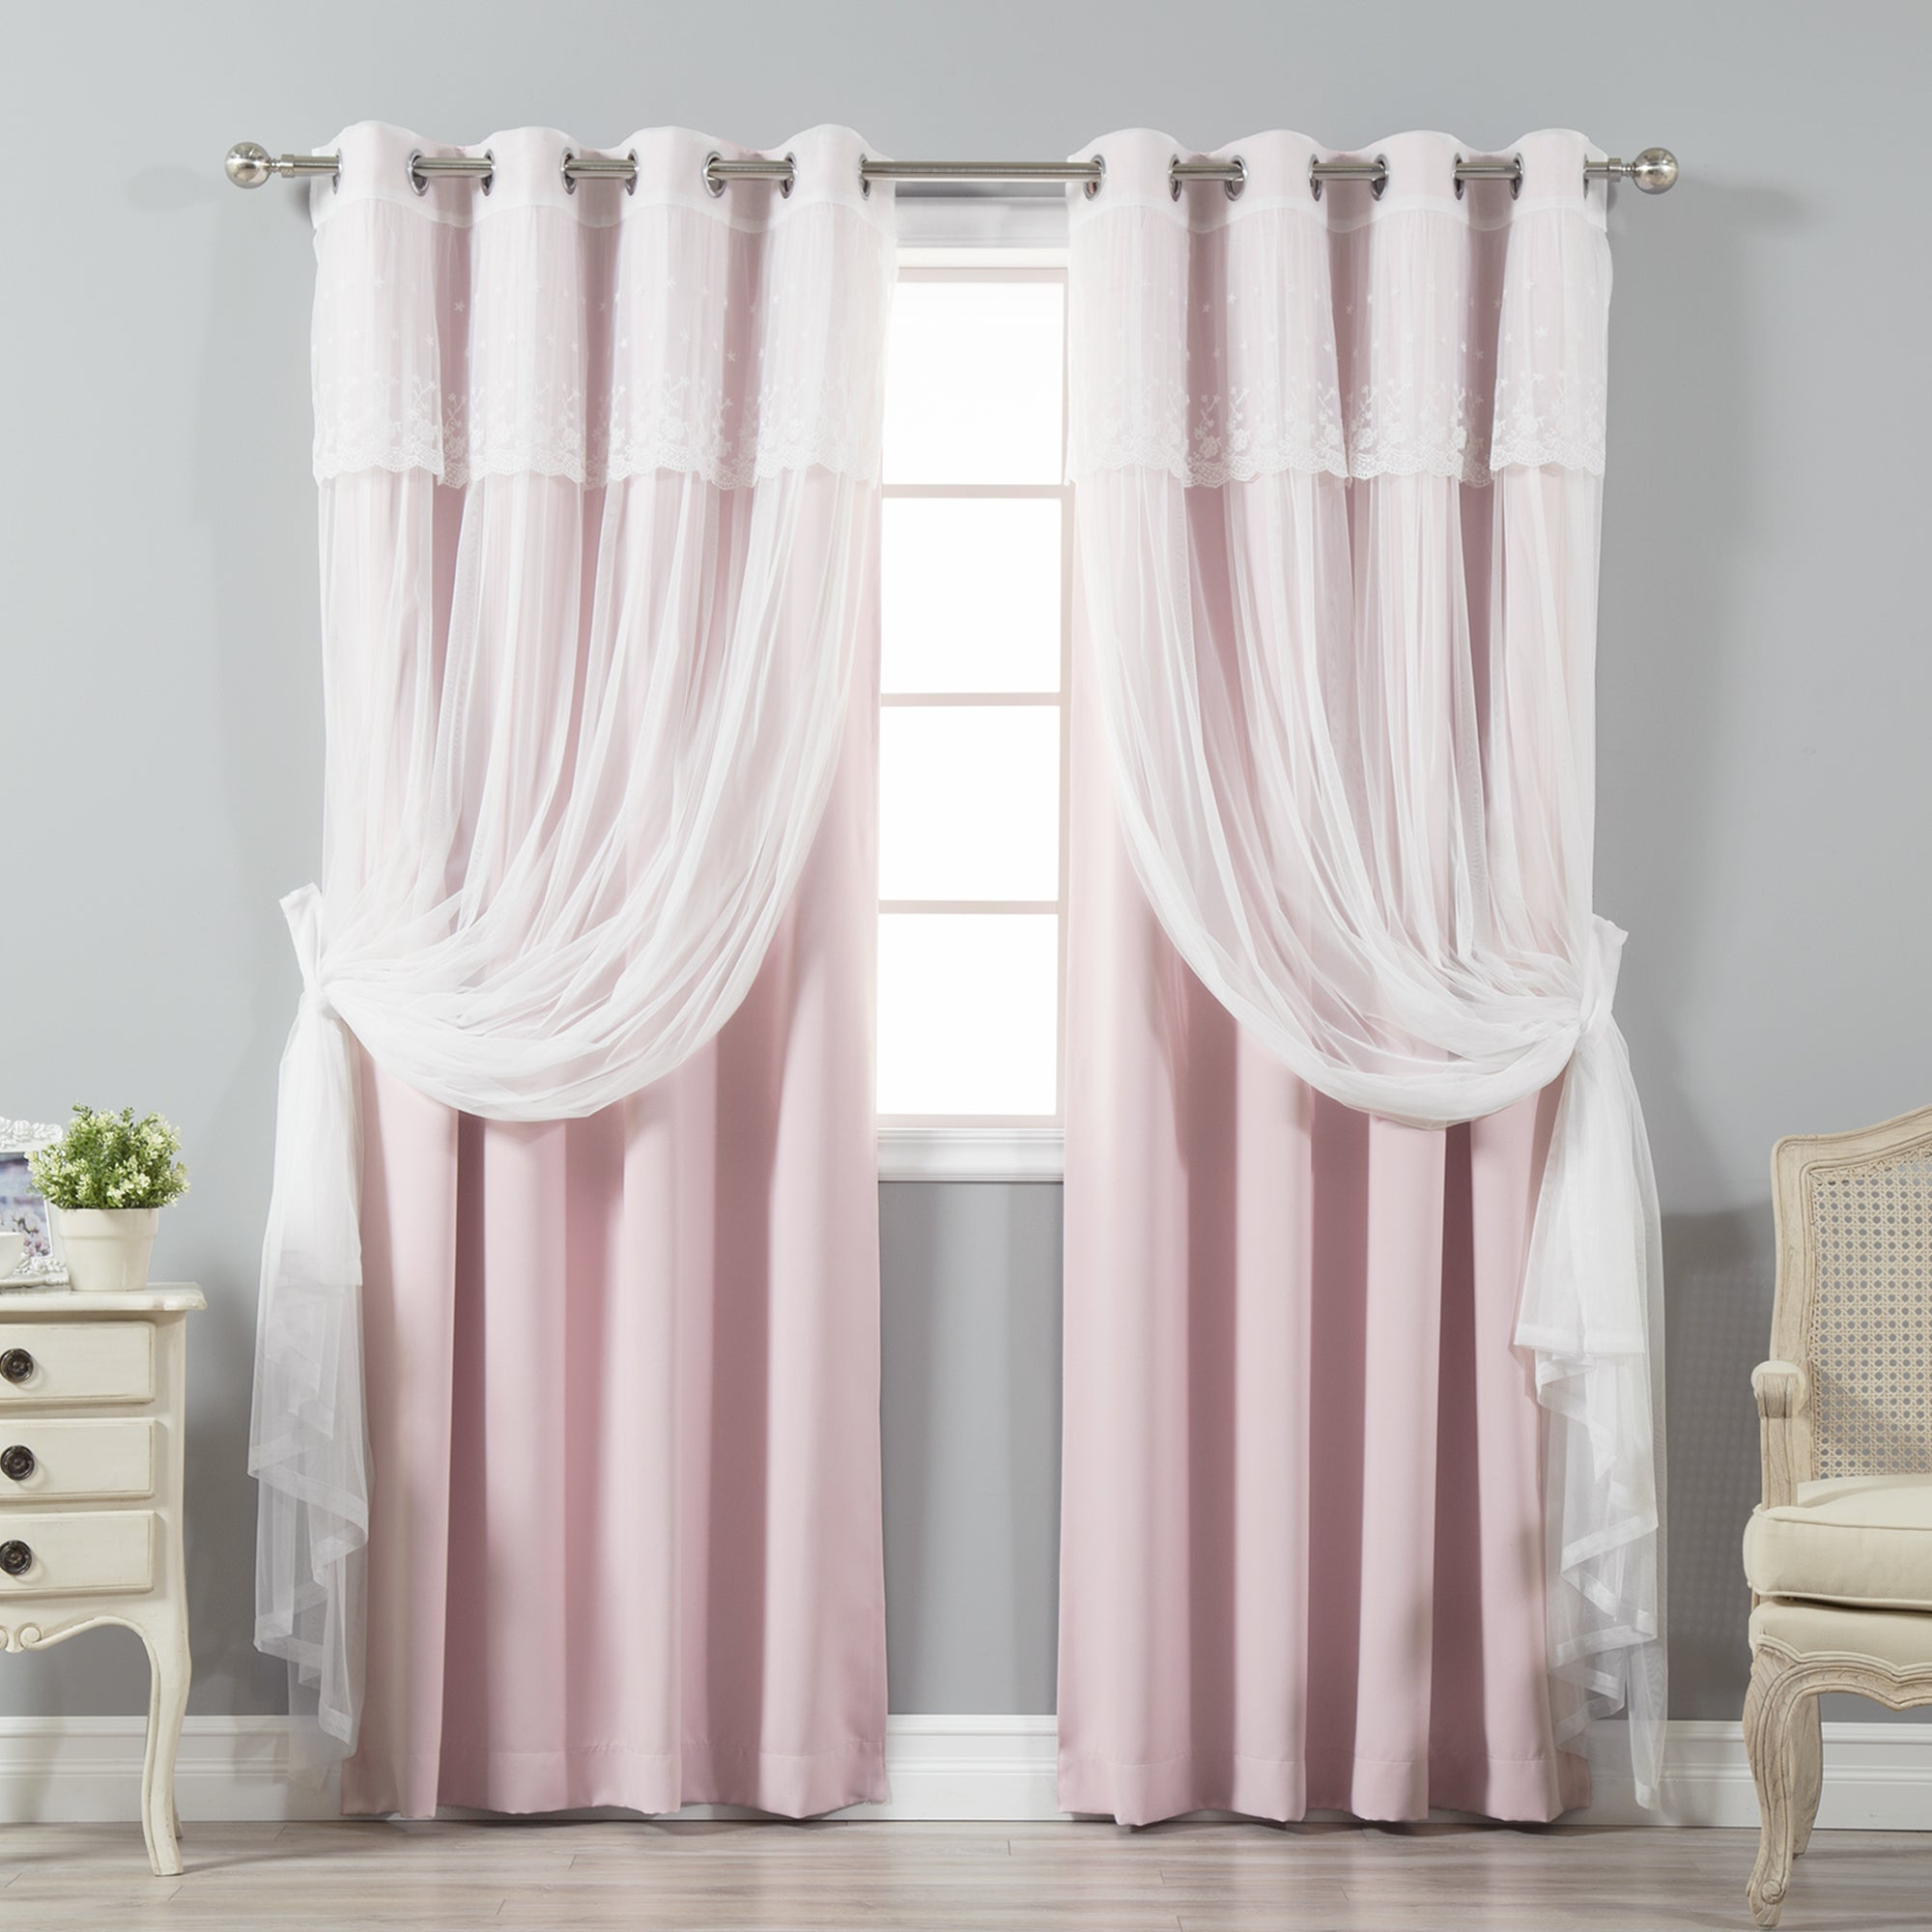 Aurora Home Tulle Sheer with Attached Valance and Blackout Mix and